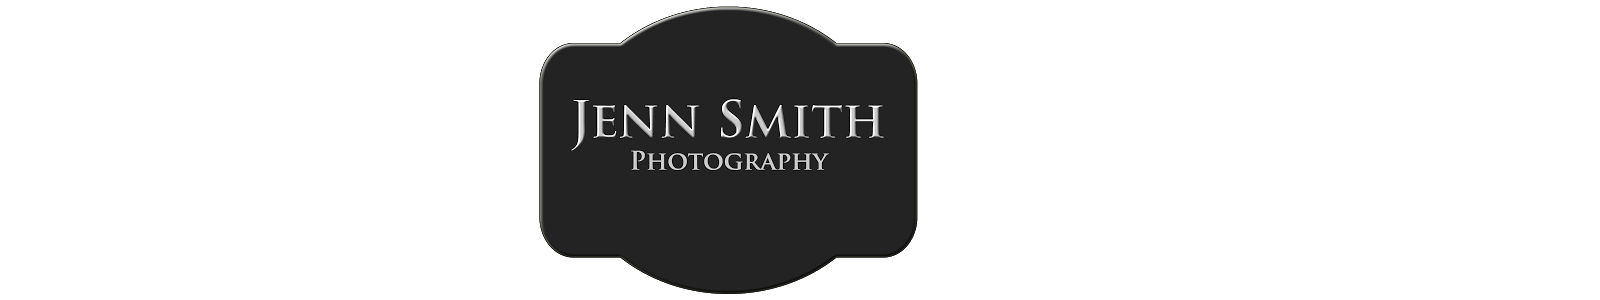 Jenn Smith Photography